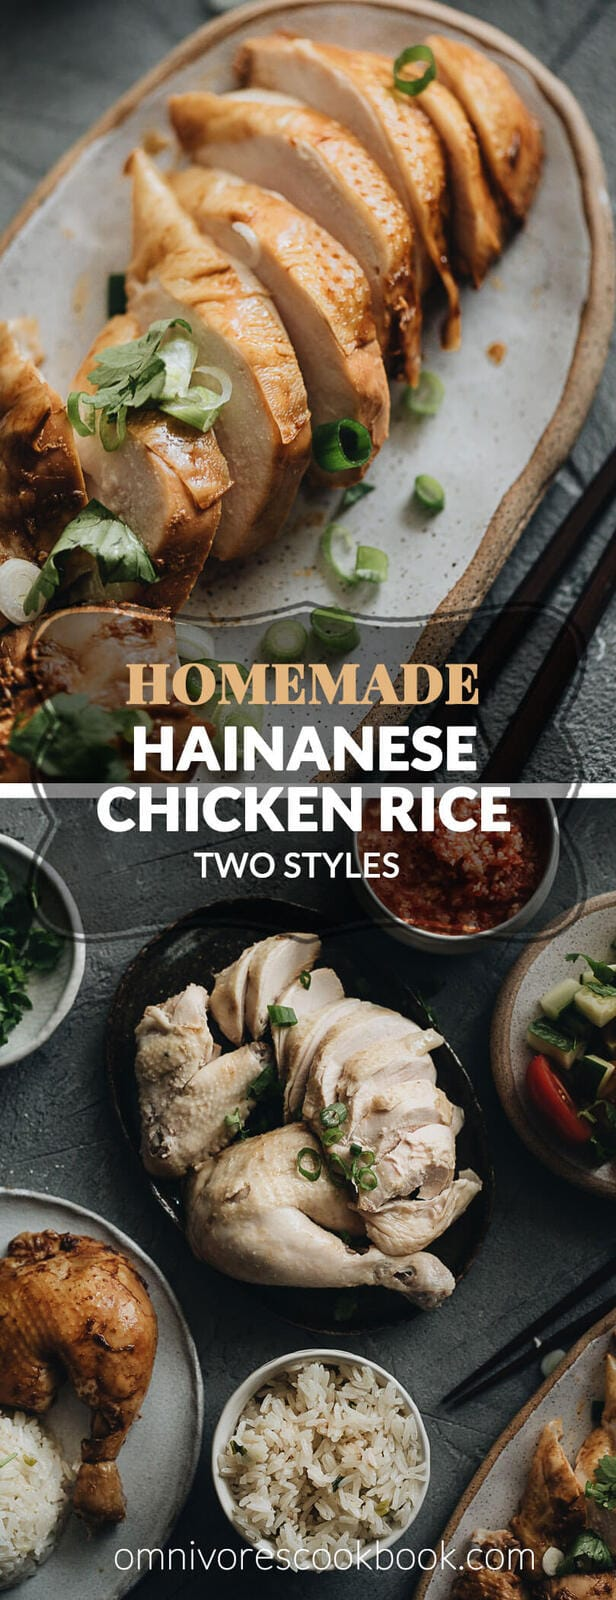 Homemade Hainanese Chicken Rice two ways - the original and the soy sauce version, served with rice, soup, and a salad.